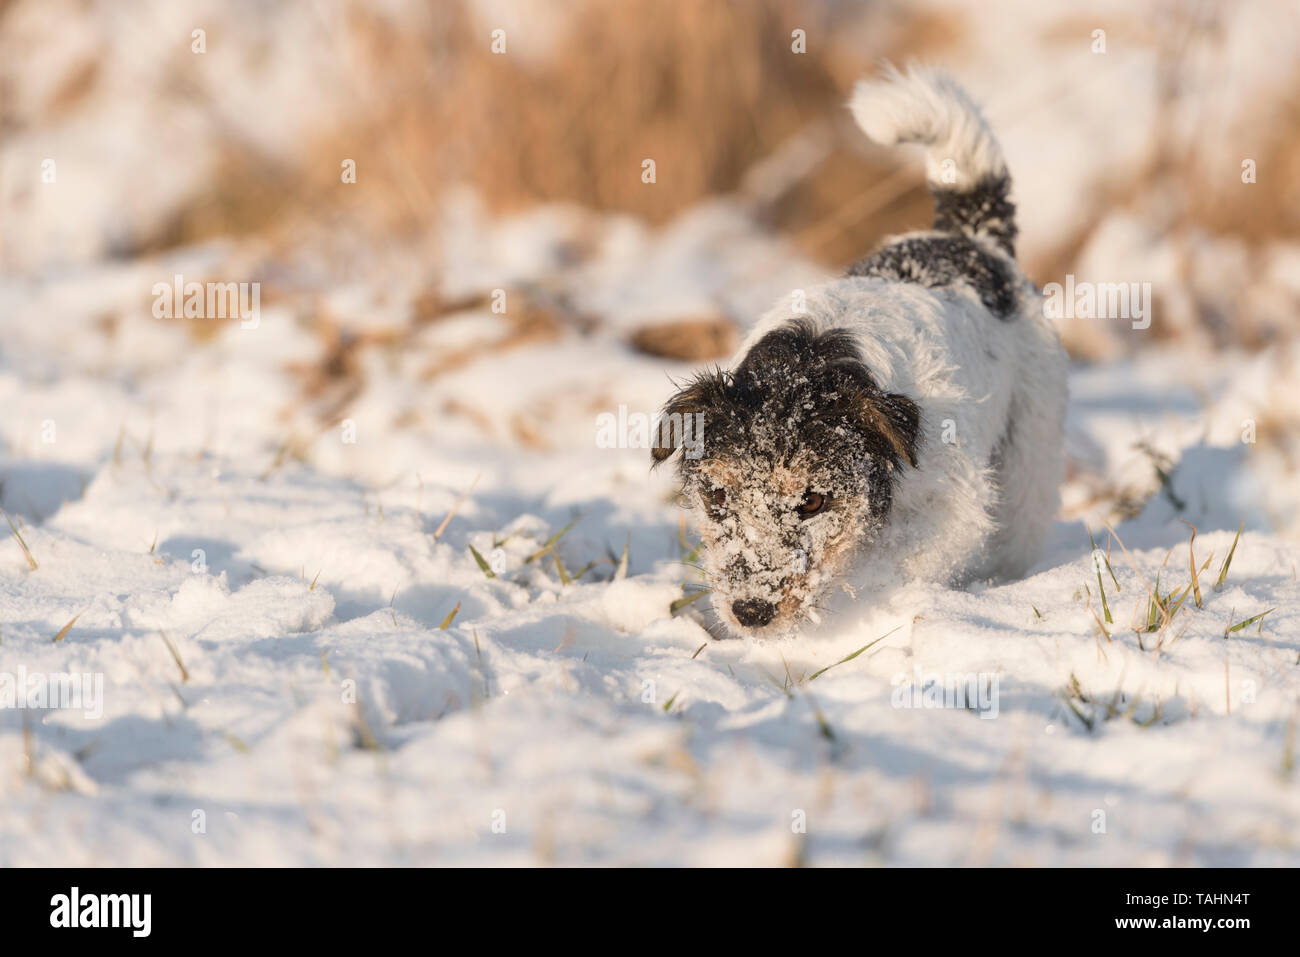 Jack Russell Terrier  - cute small hunting dog picks up a track in the snow and tracks it - Stock Image